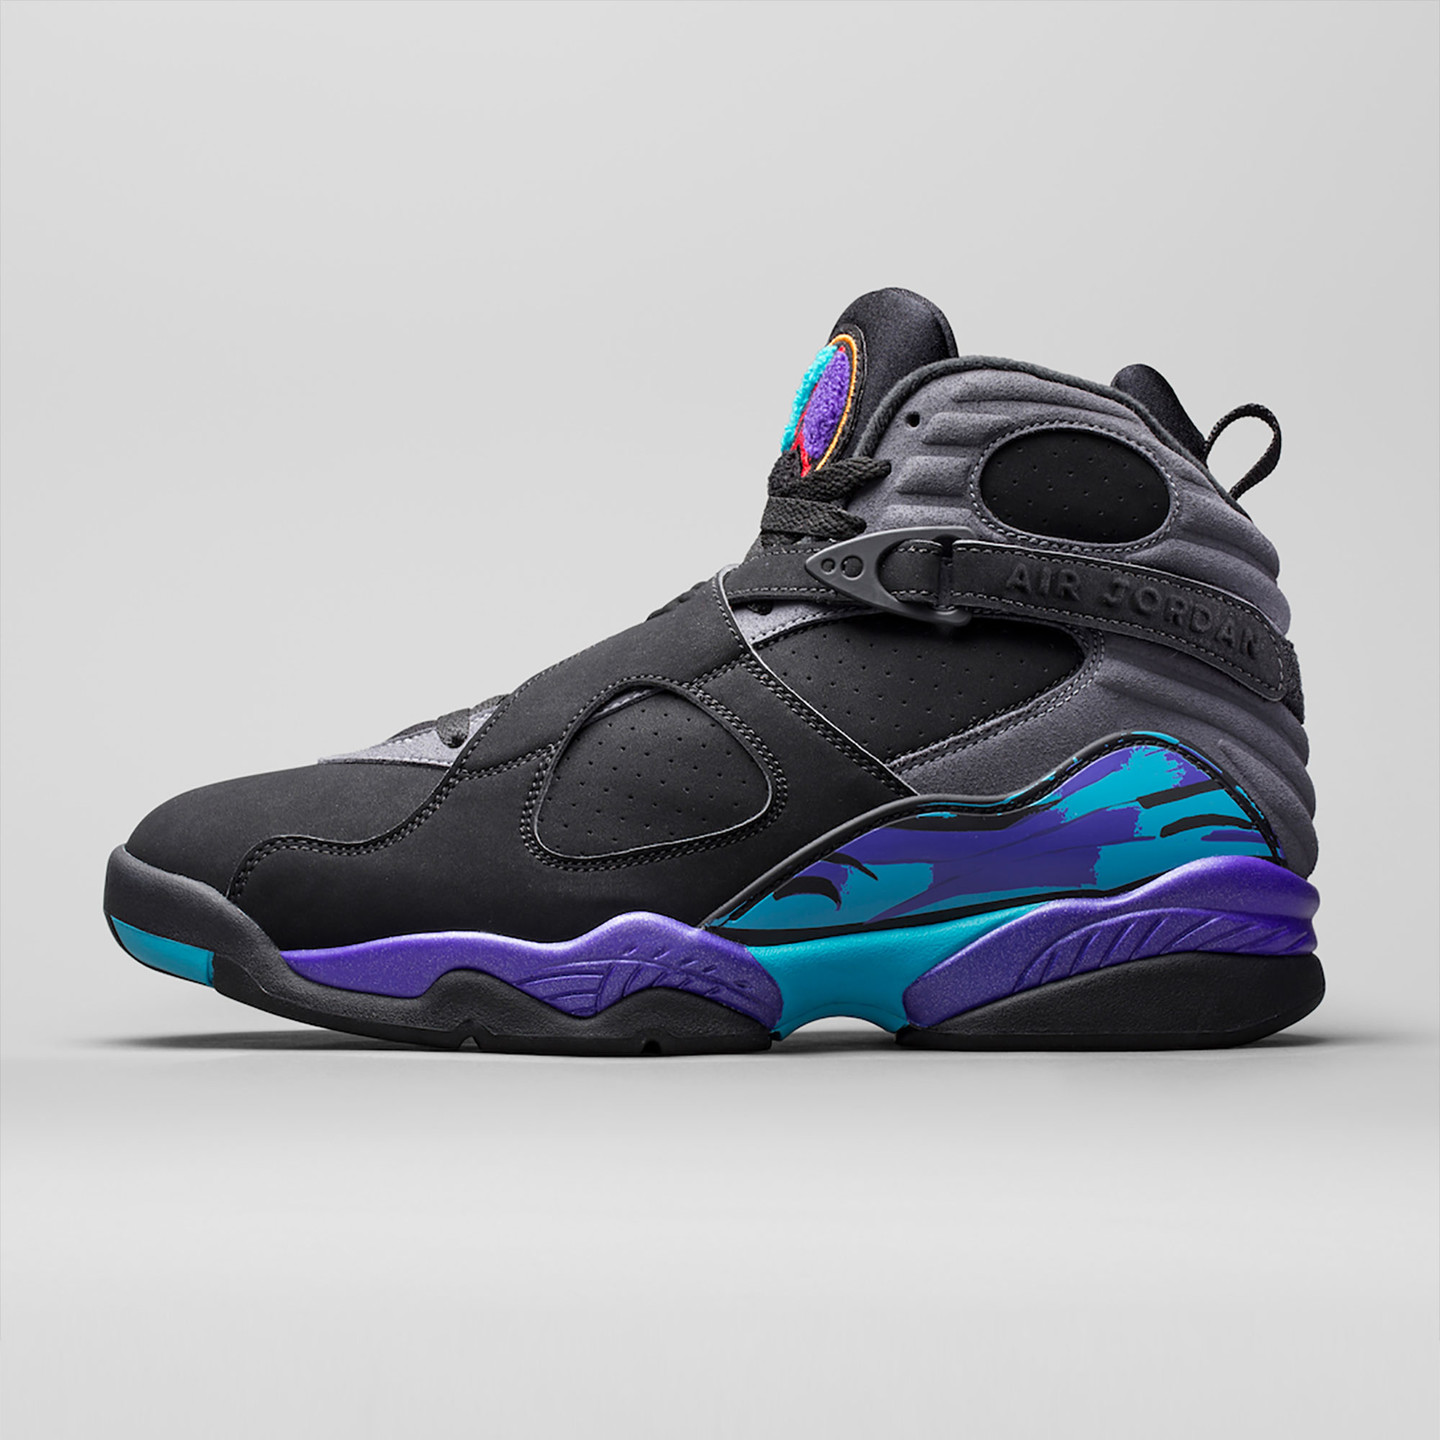 Jordan Air Jordan Retro 8 'Aqua' Black/True Red-Flint Grey-Bright Concord 305381-025-42.5